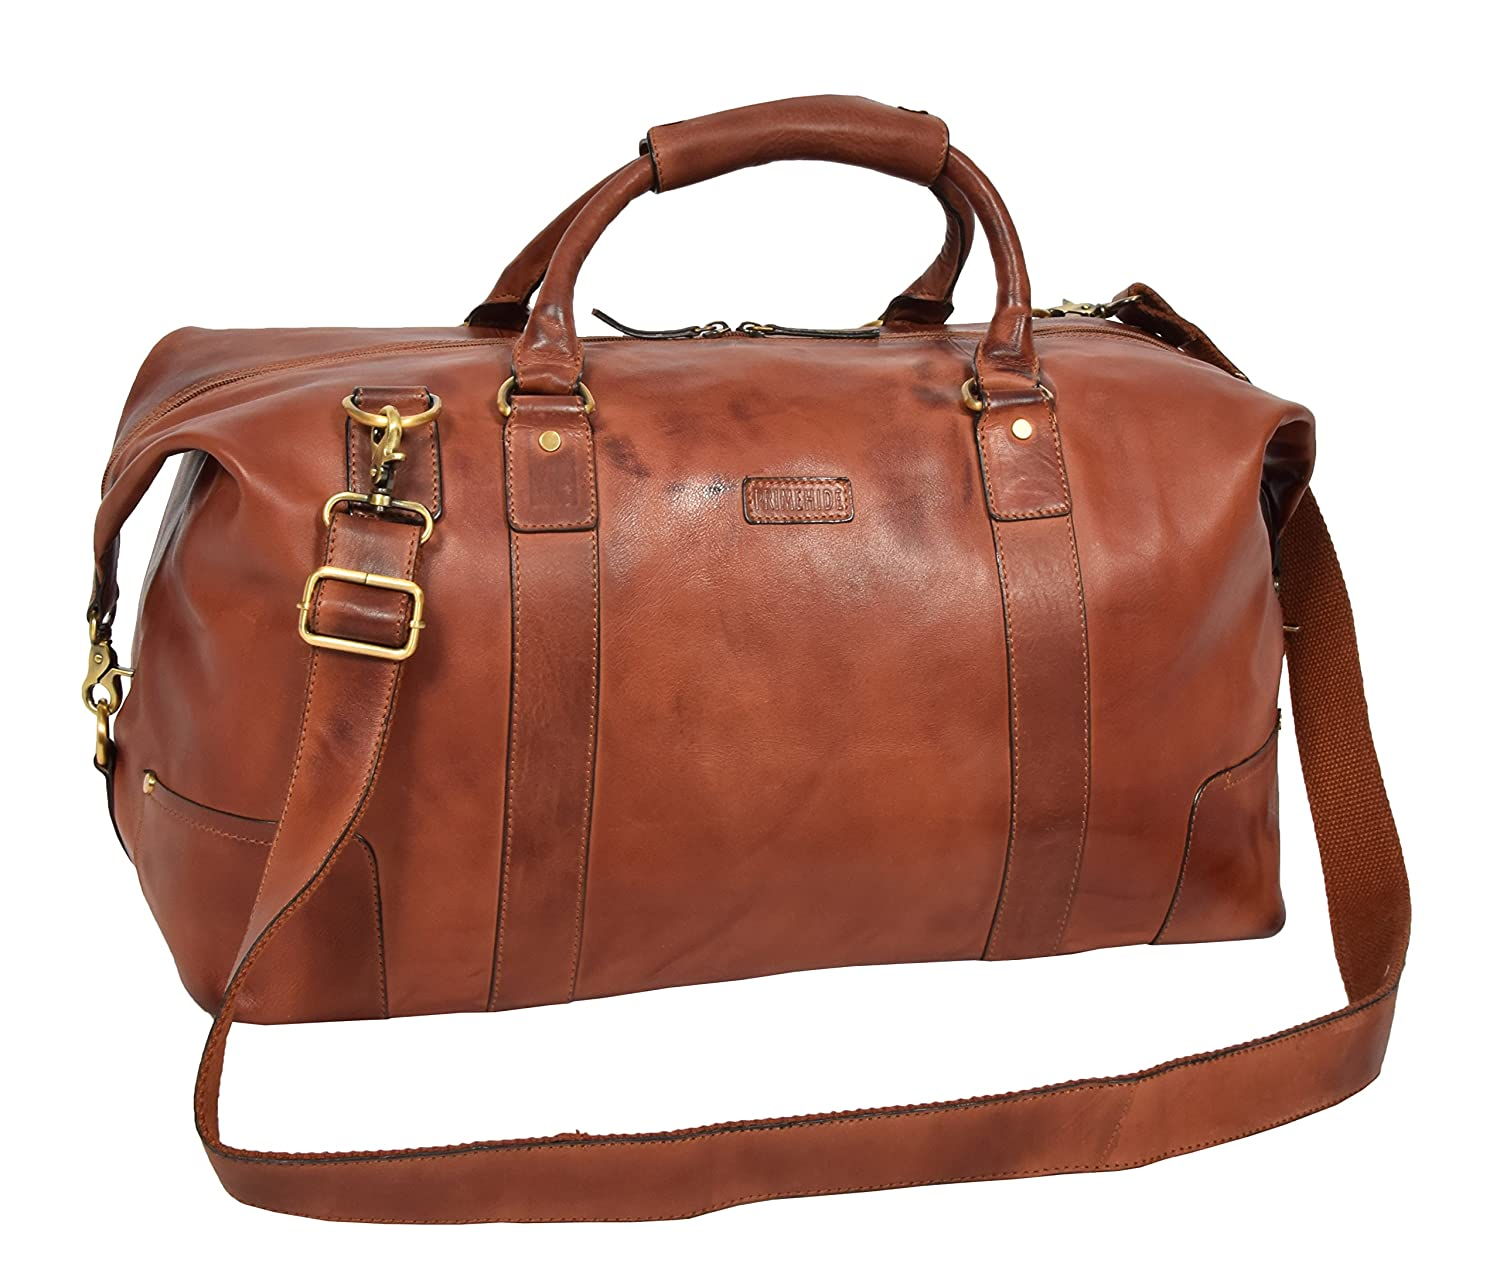 935e4b3ac Genuine Leather Holdall Vintage Tan Travel Duffle Bag Gym Weekend Cabin Bag  Rome  Amazon.co.uk  Clothing